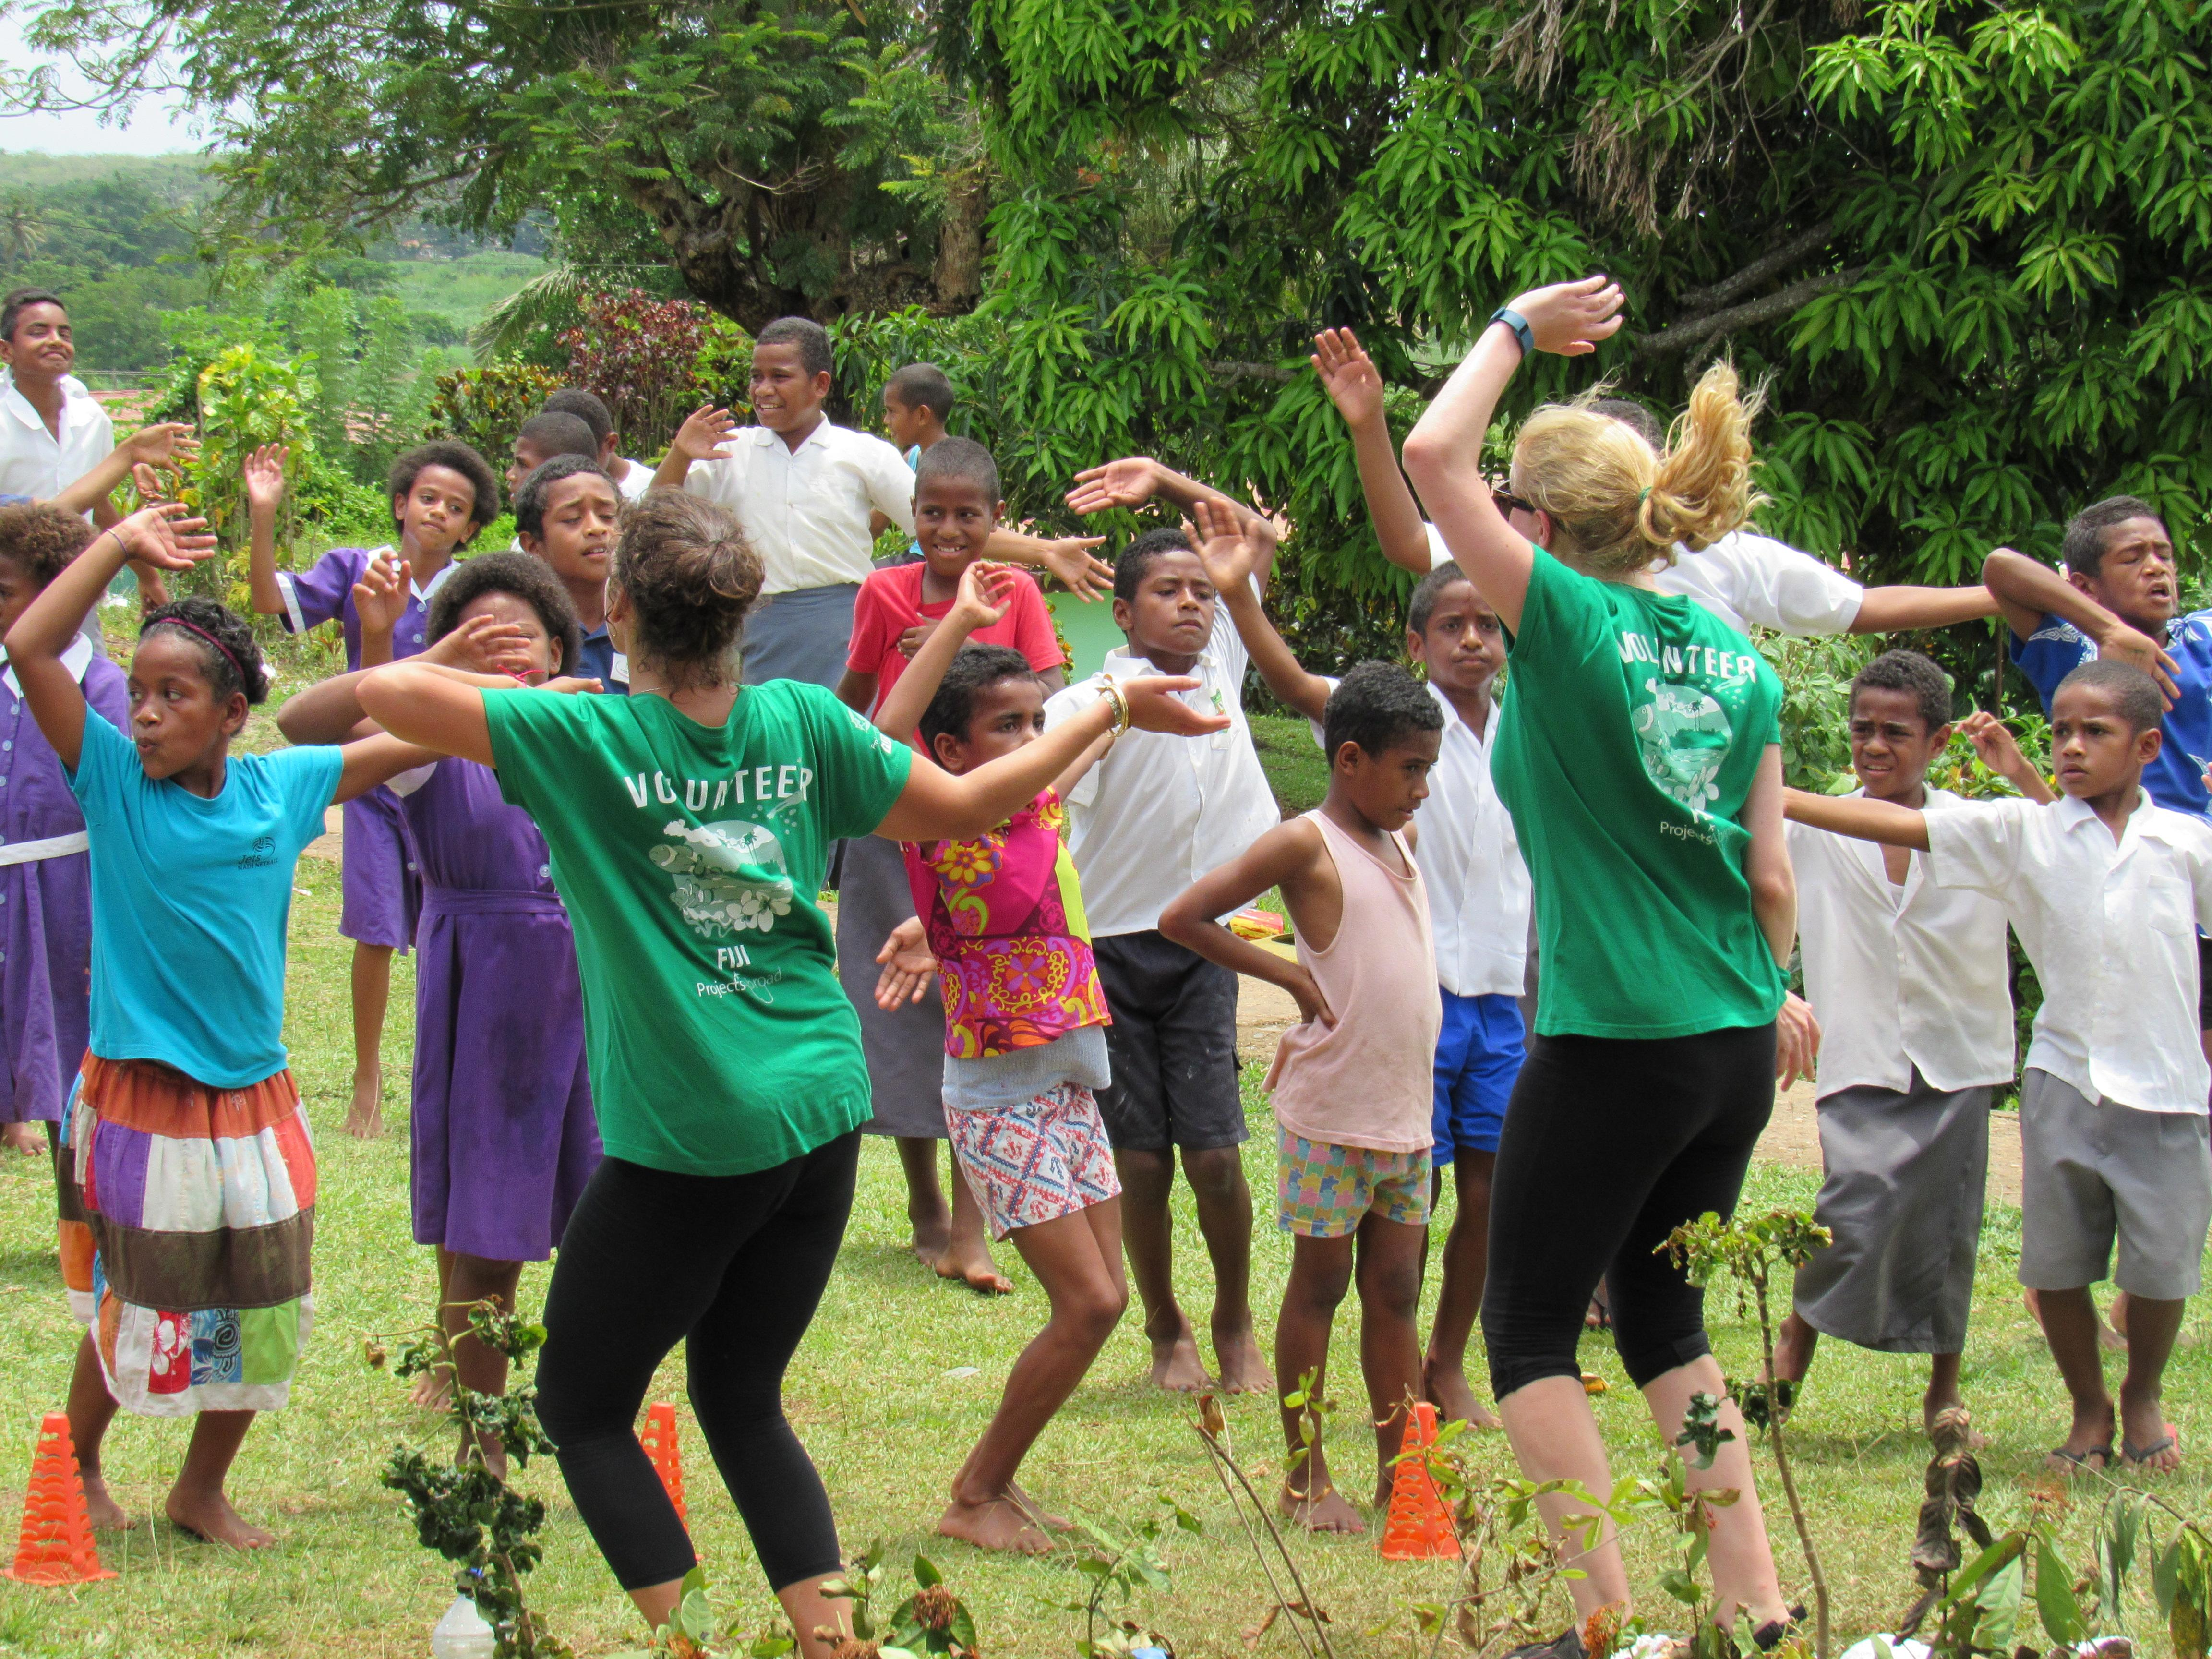 Two interns from Projects Abroad pictured teaching Zumba to a school class as part of their nutrition internship in Fiji.